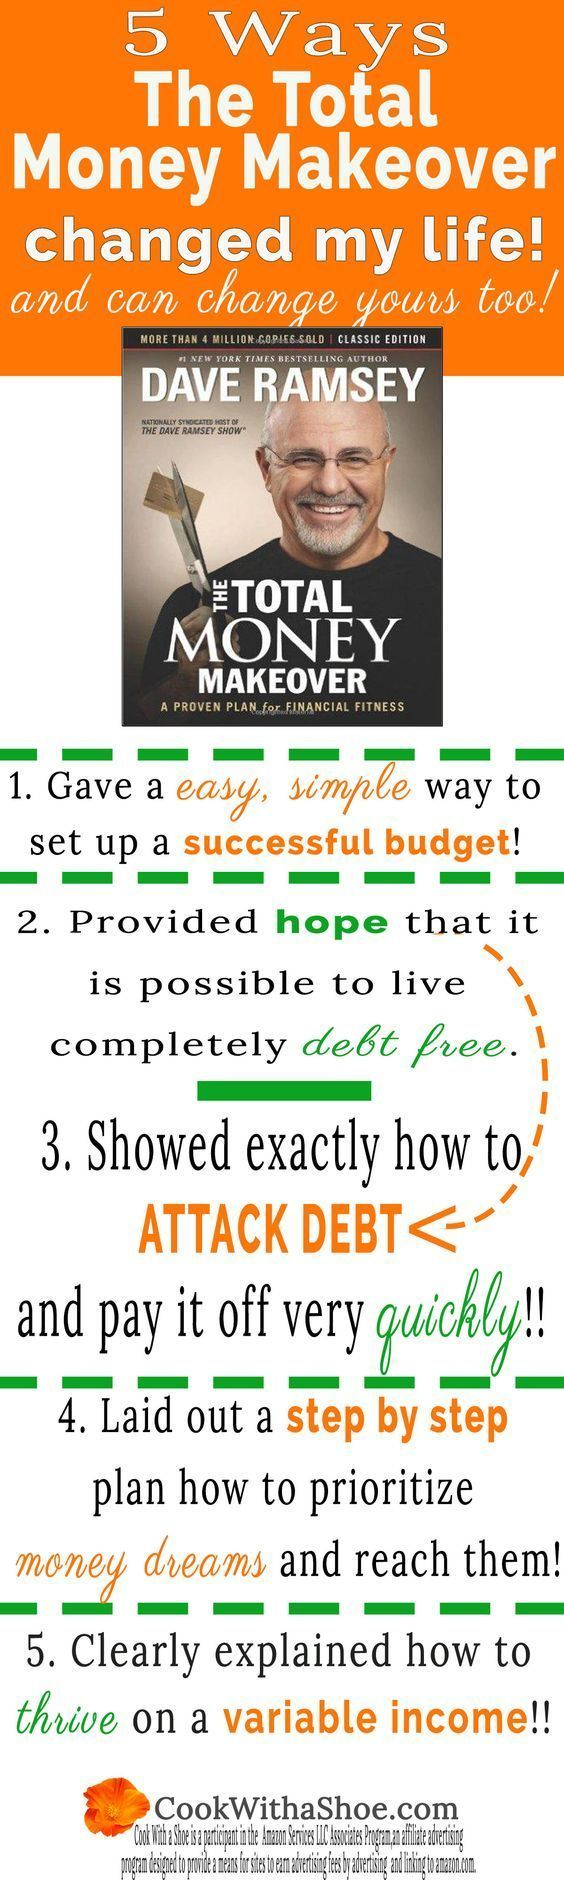 You CAN have a successful budget!! I went from being a budget hater to now having a successful budget and loving it! The Total Money Makeover will change your life too!! |Cook With a Shoe